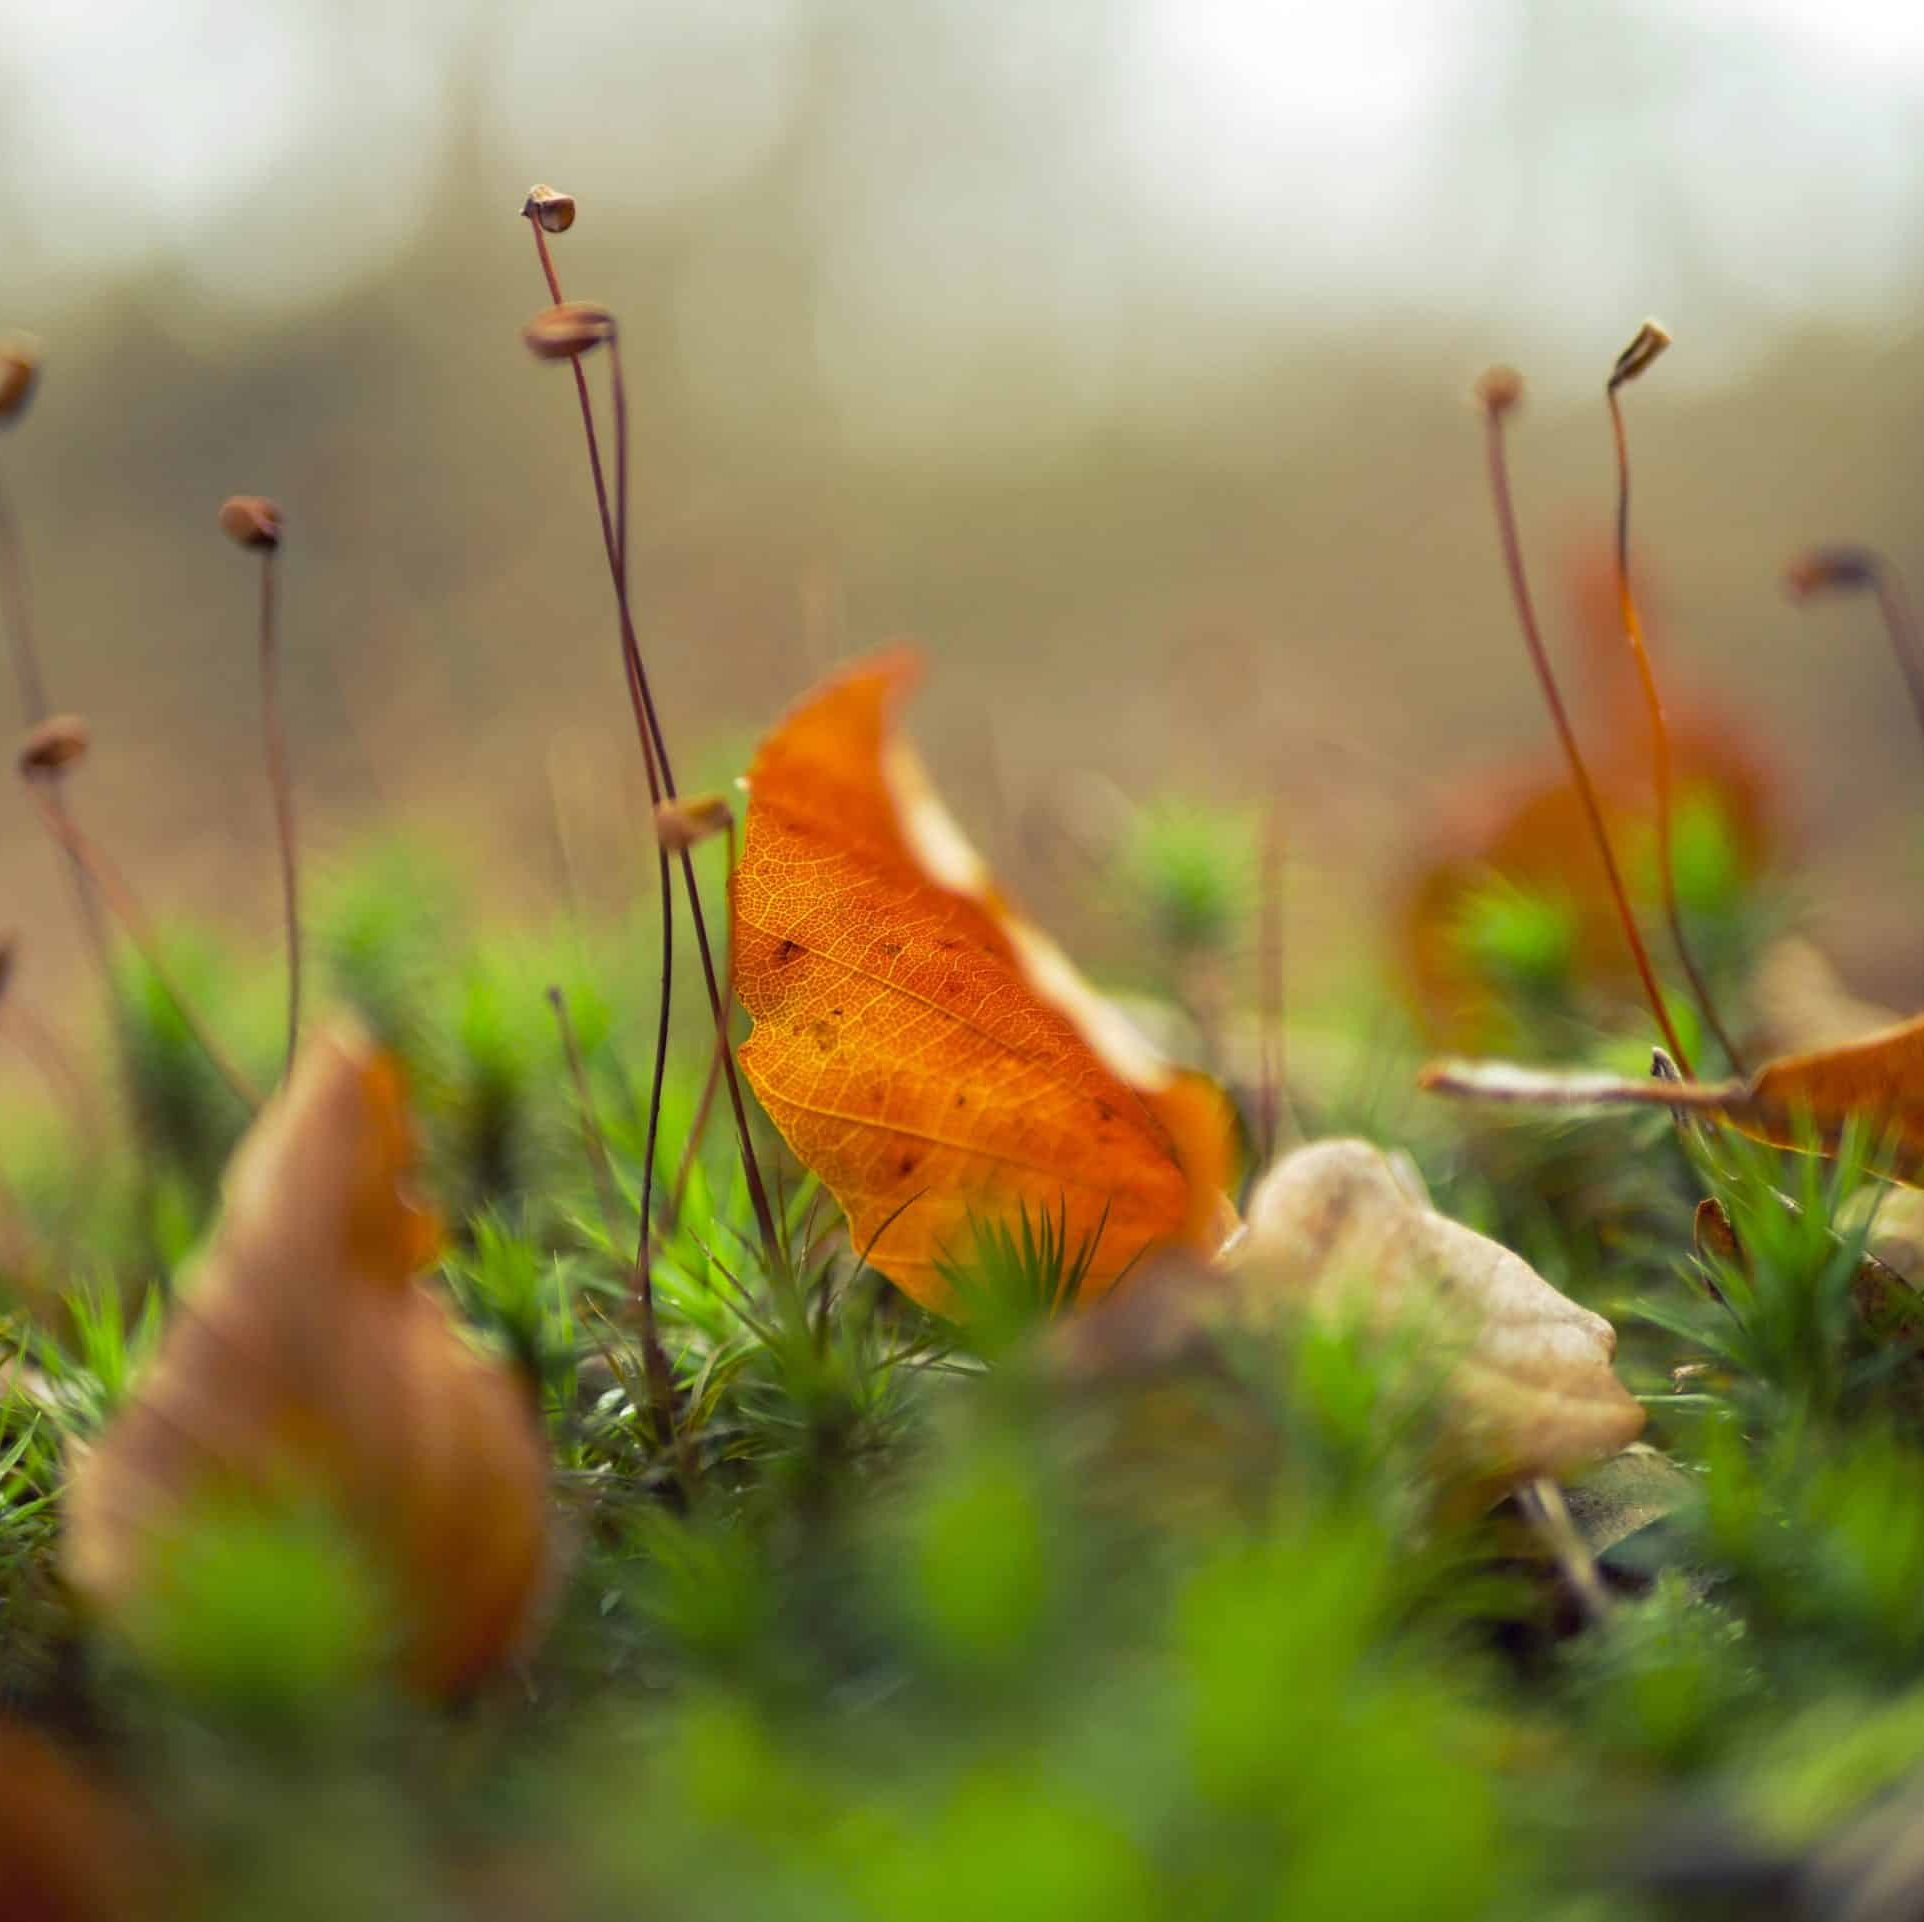 fall leaves on grass